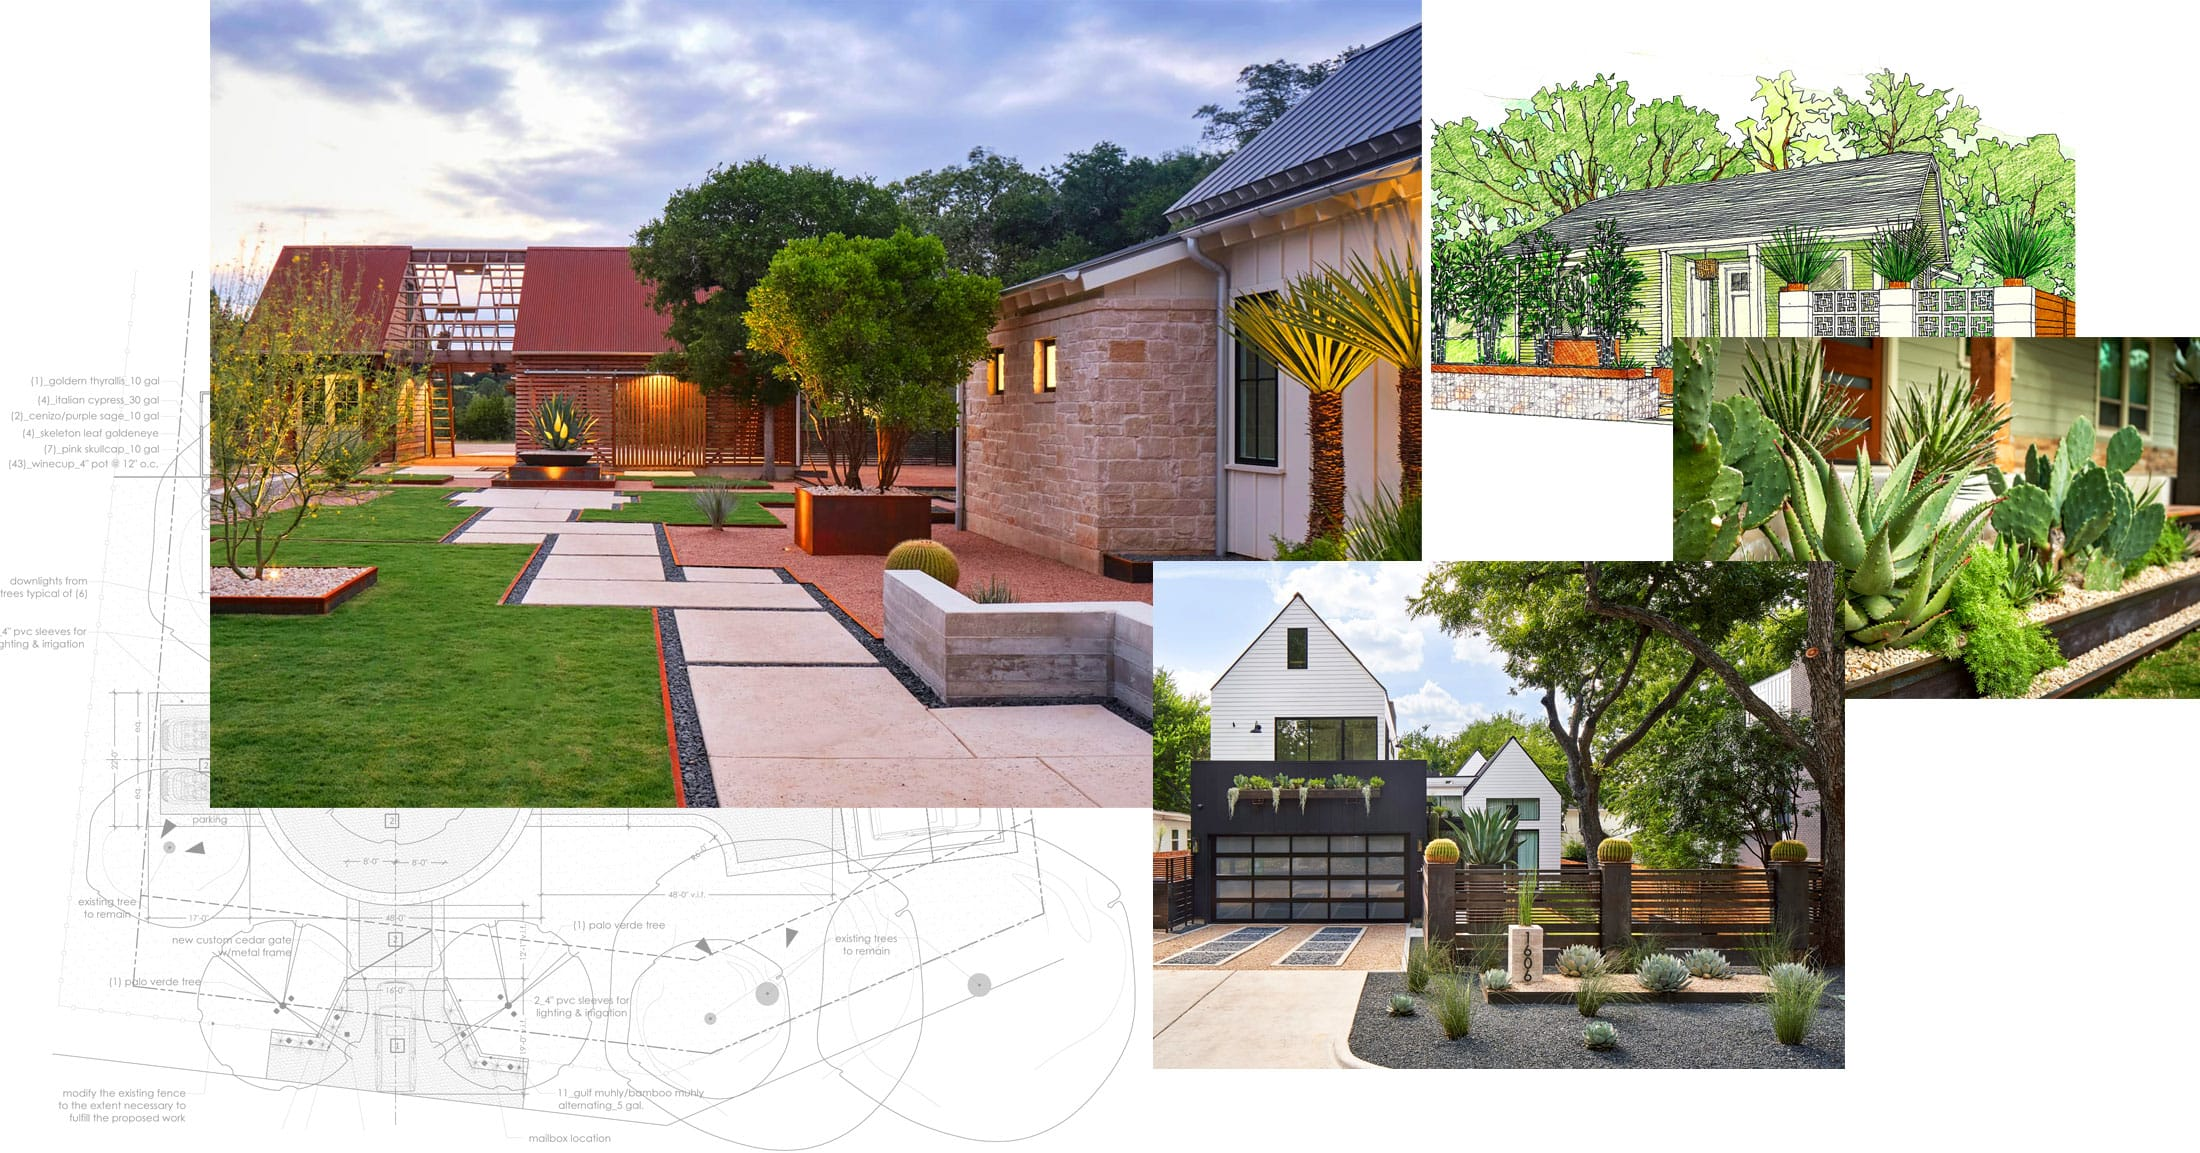 Lush GreenScape Design sustainable landscape design build collage image